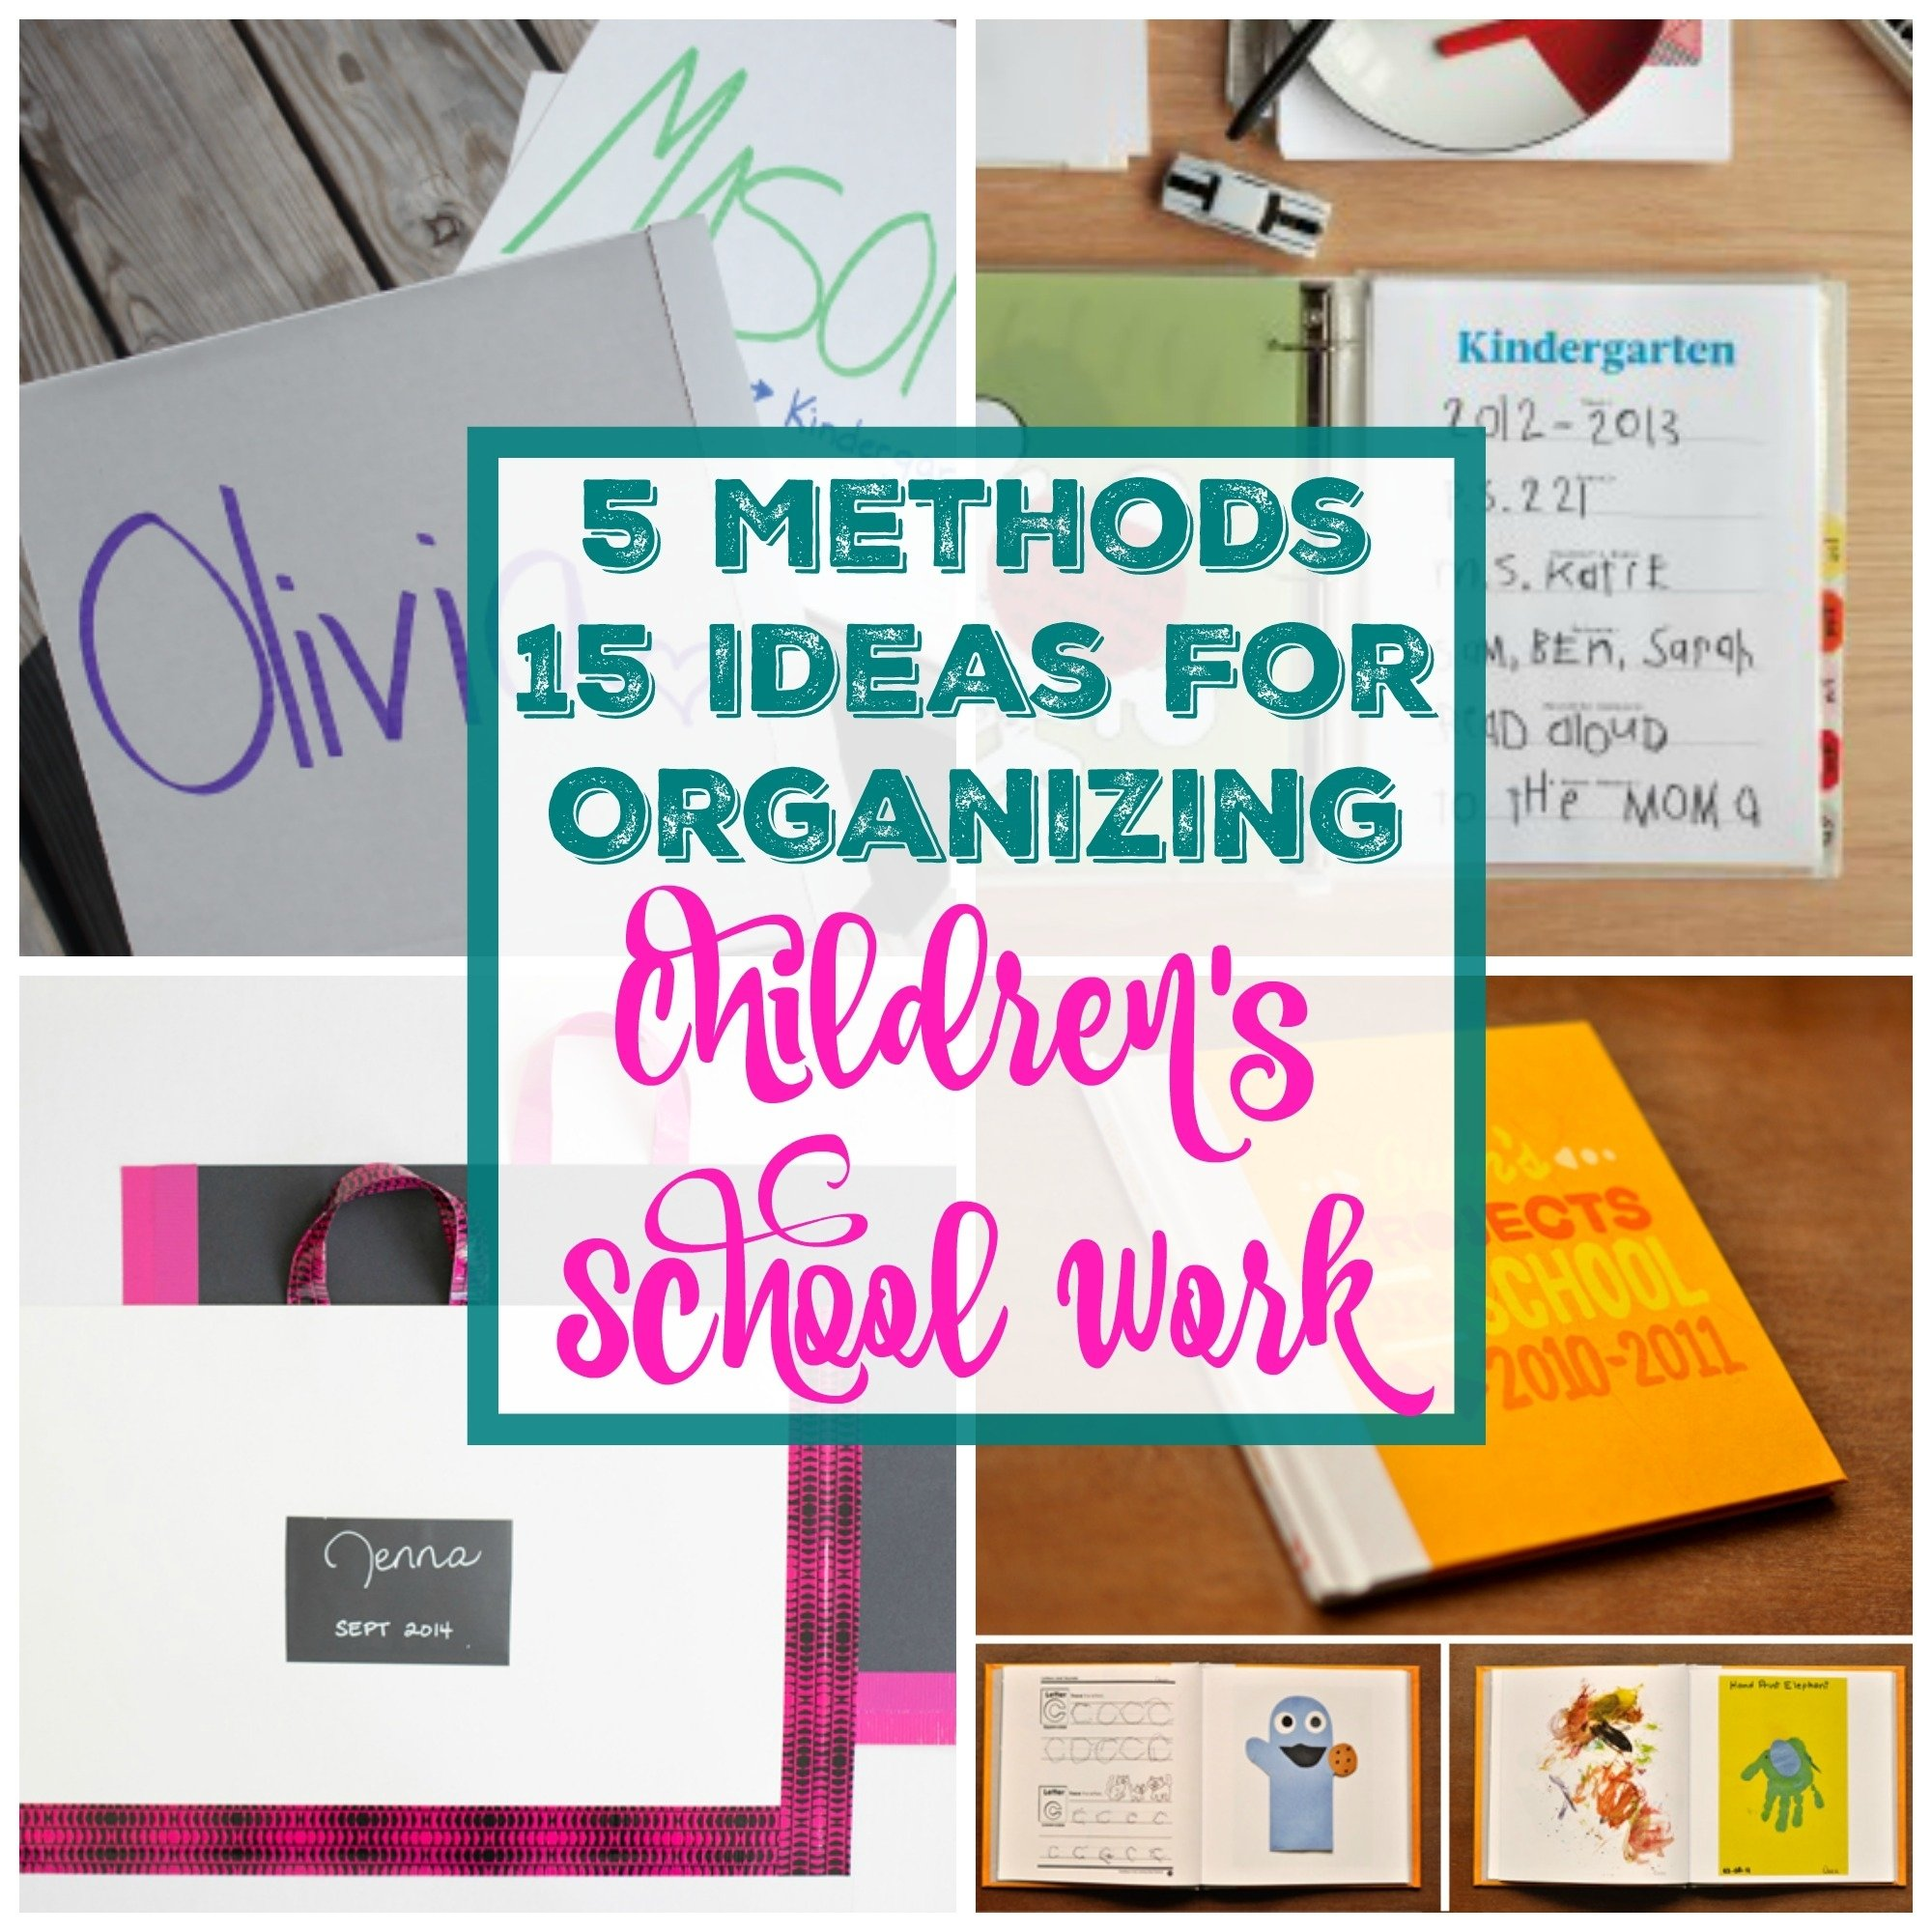 10 Cute How To Ideas For Kids 15 fantastic ideas for organizing and storing childrens school work 2020